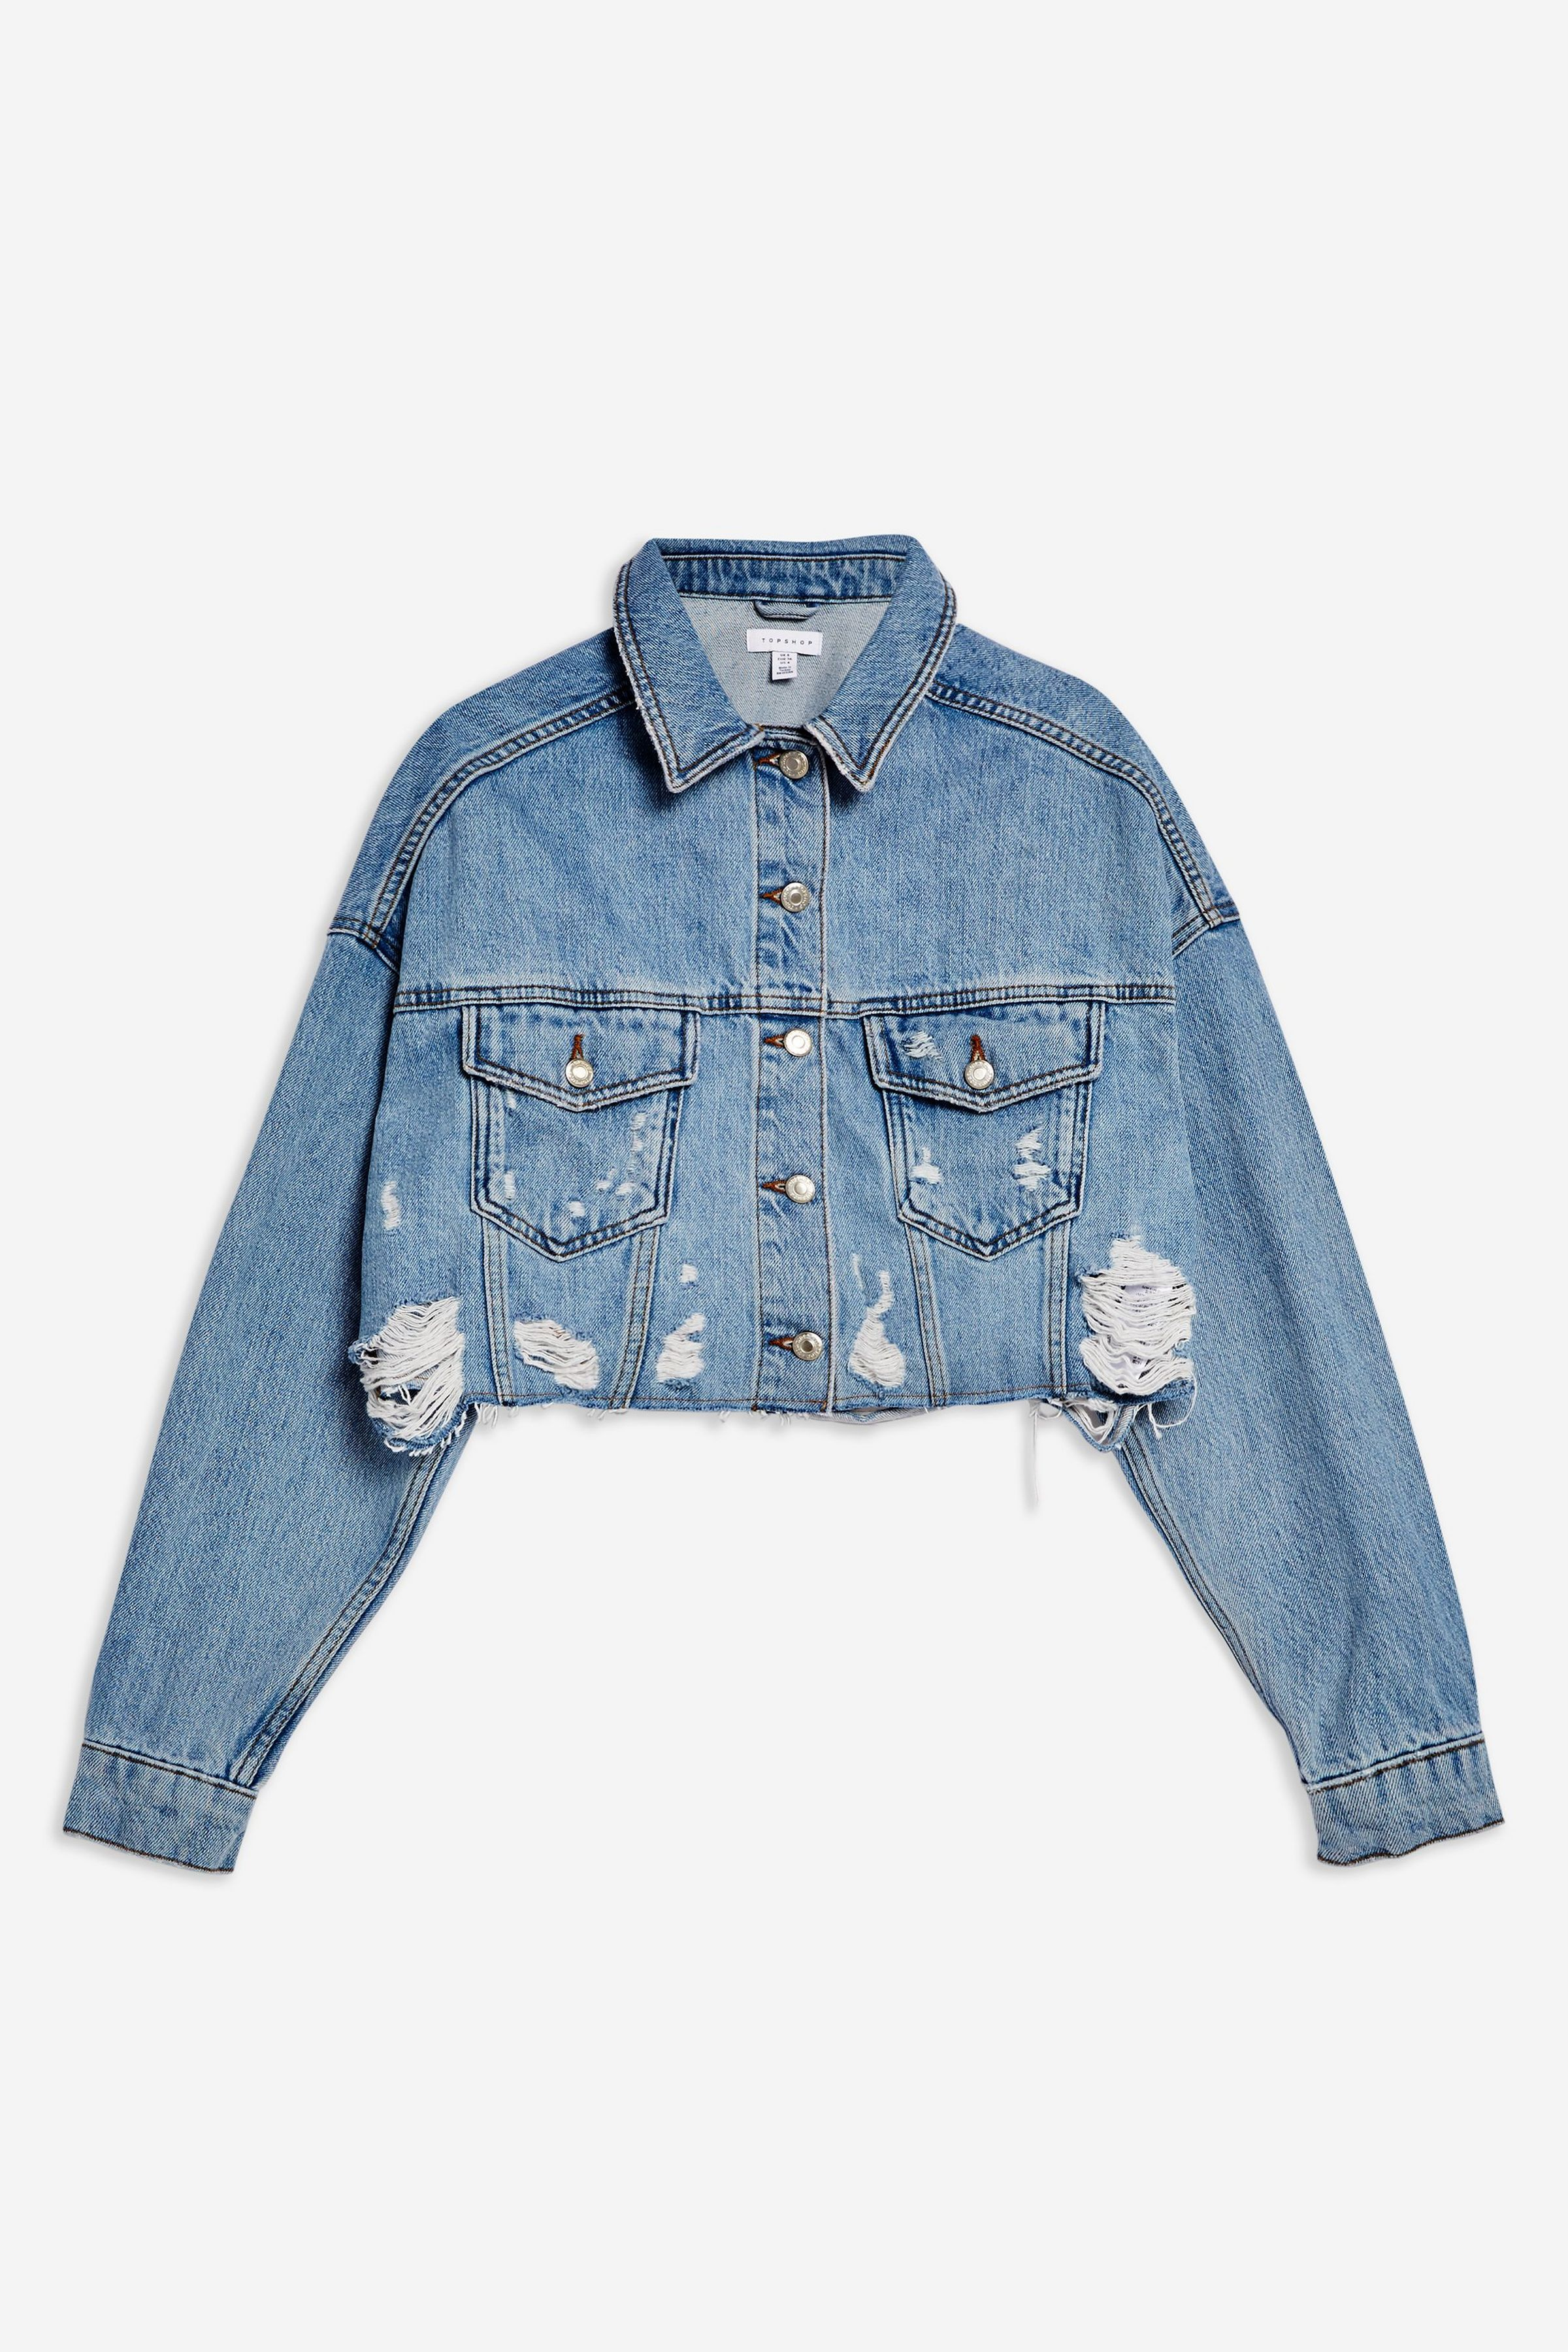 Topshop Petite Cropped Oversized Jacket 195 Pen Liked On Polyvore Featuring Outerwear Jackets Oversized Denim Jacket Jean Jacket Outfits Oversized Jacket